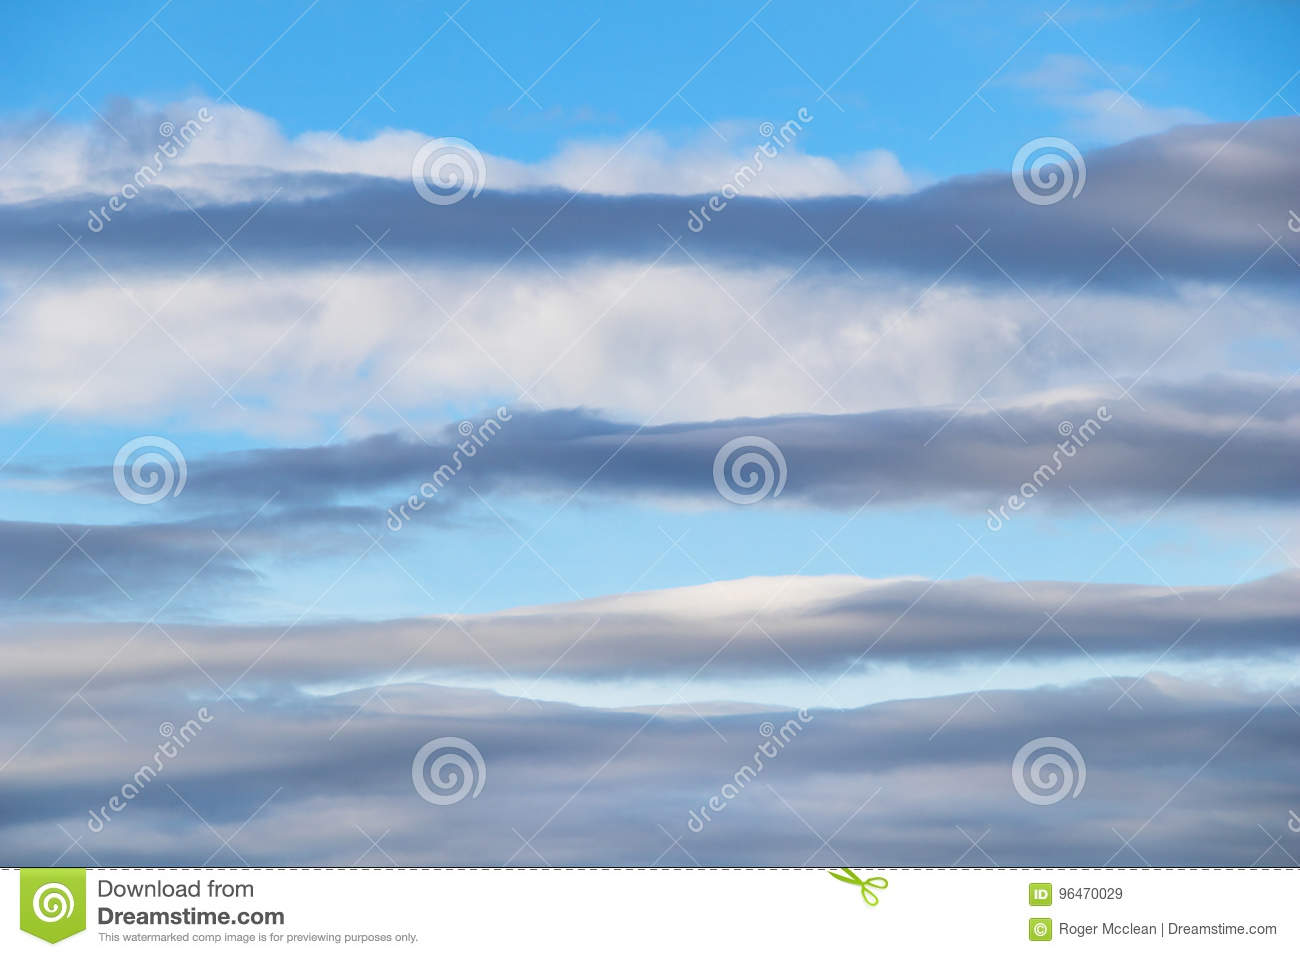 Above layers and blue sky